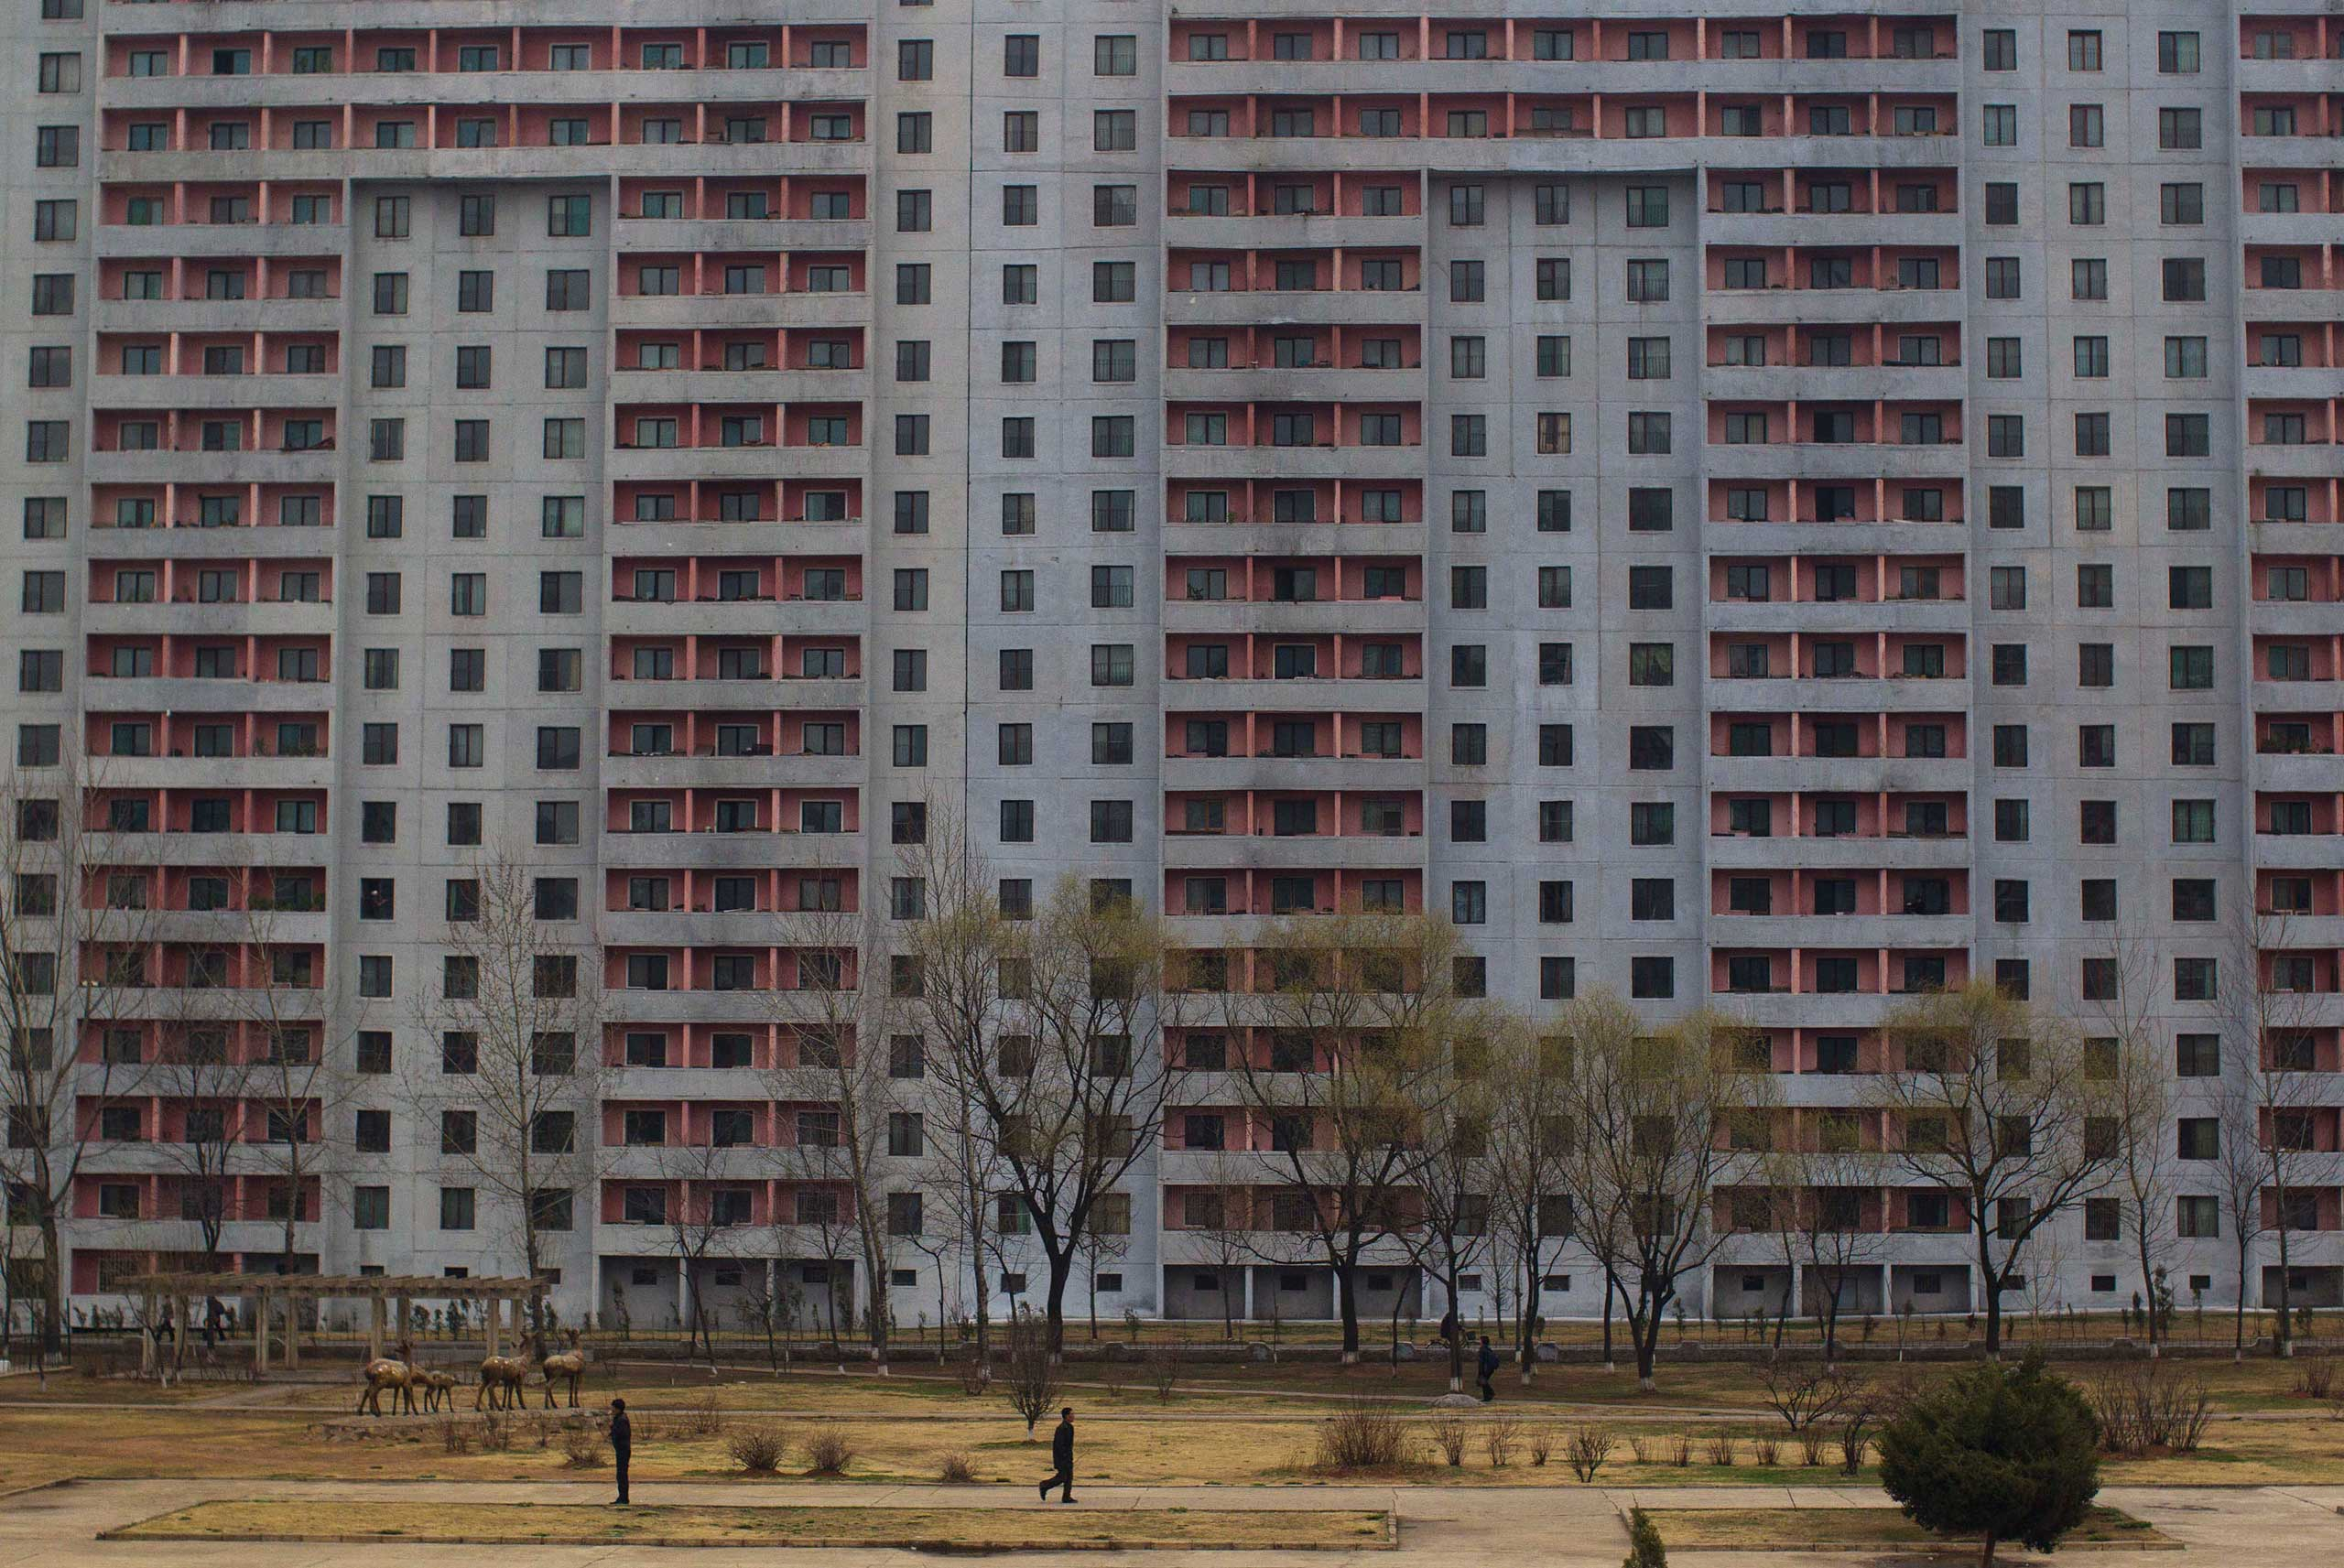 April 12, 2012. A pedestrian walks past a large apartment block in Pyongyang.